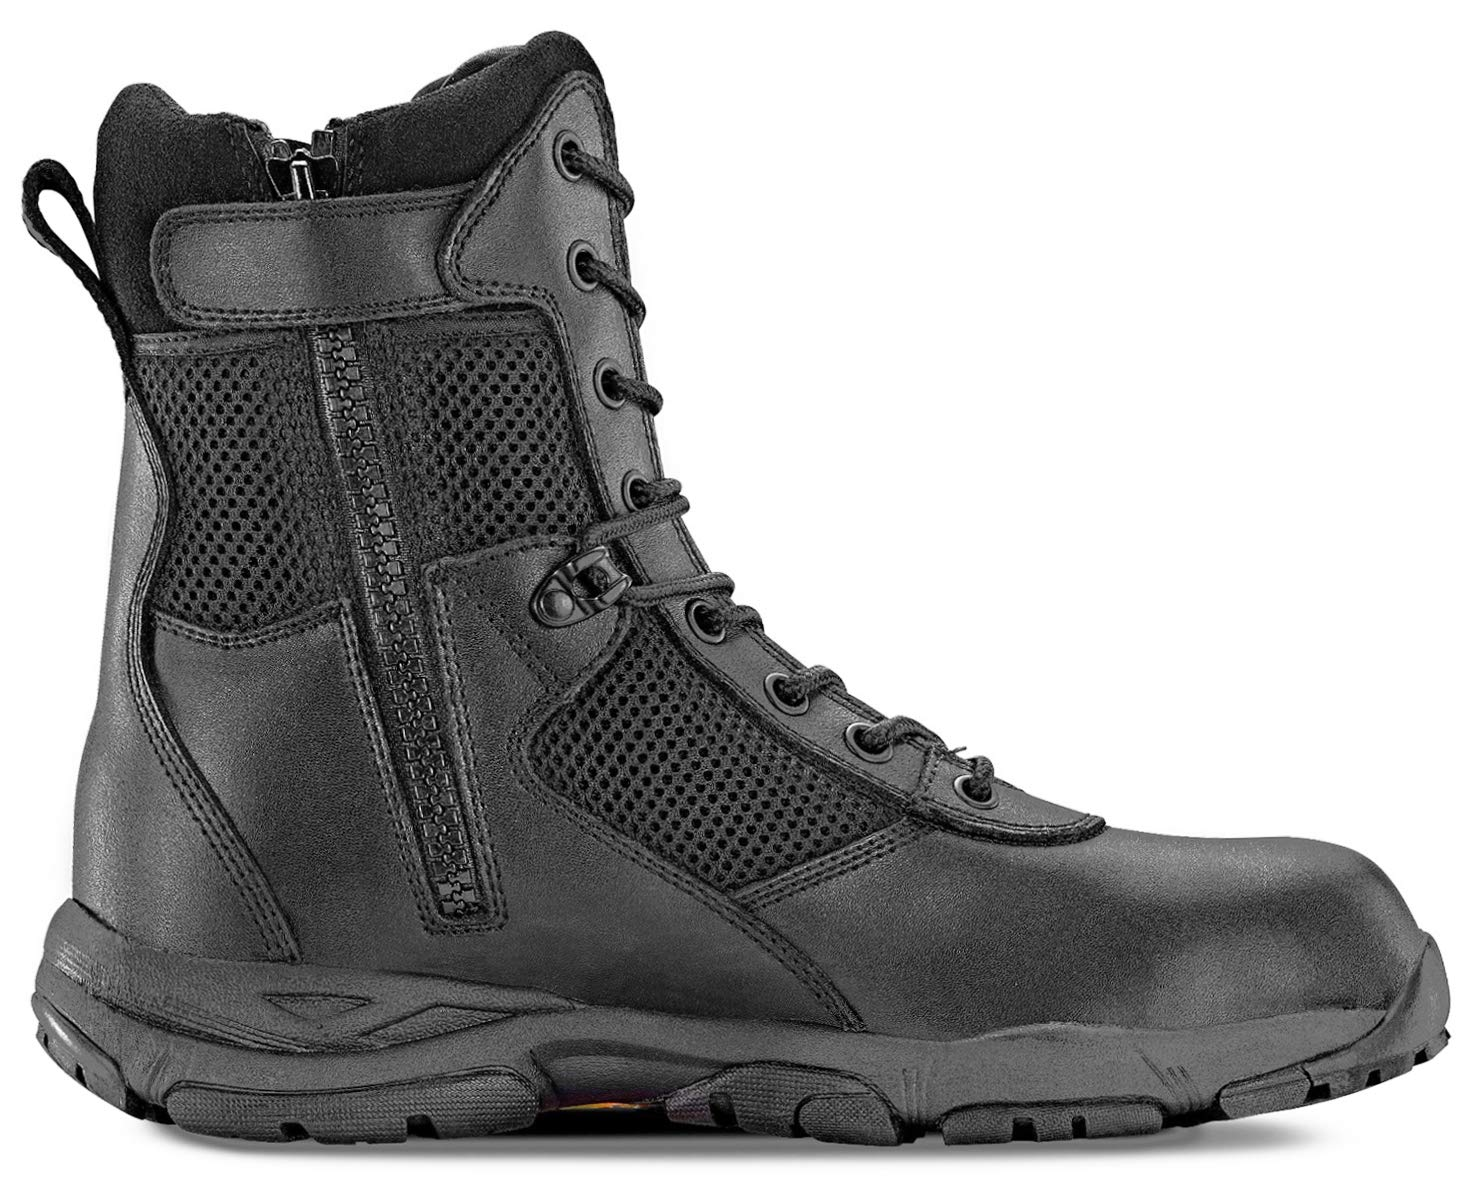 Maelstrom Landship 2.0 Men's 8'' Black Military Tactical Boots with Zipper, Size 10M by Maelstrom